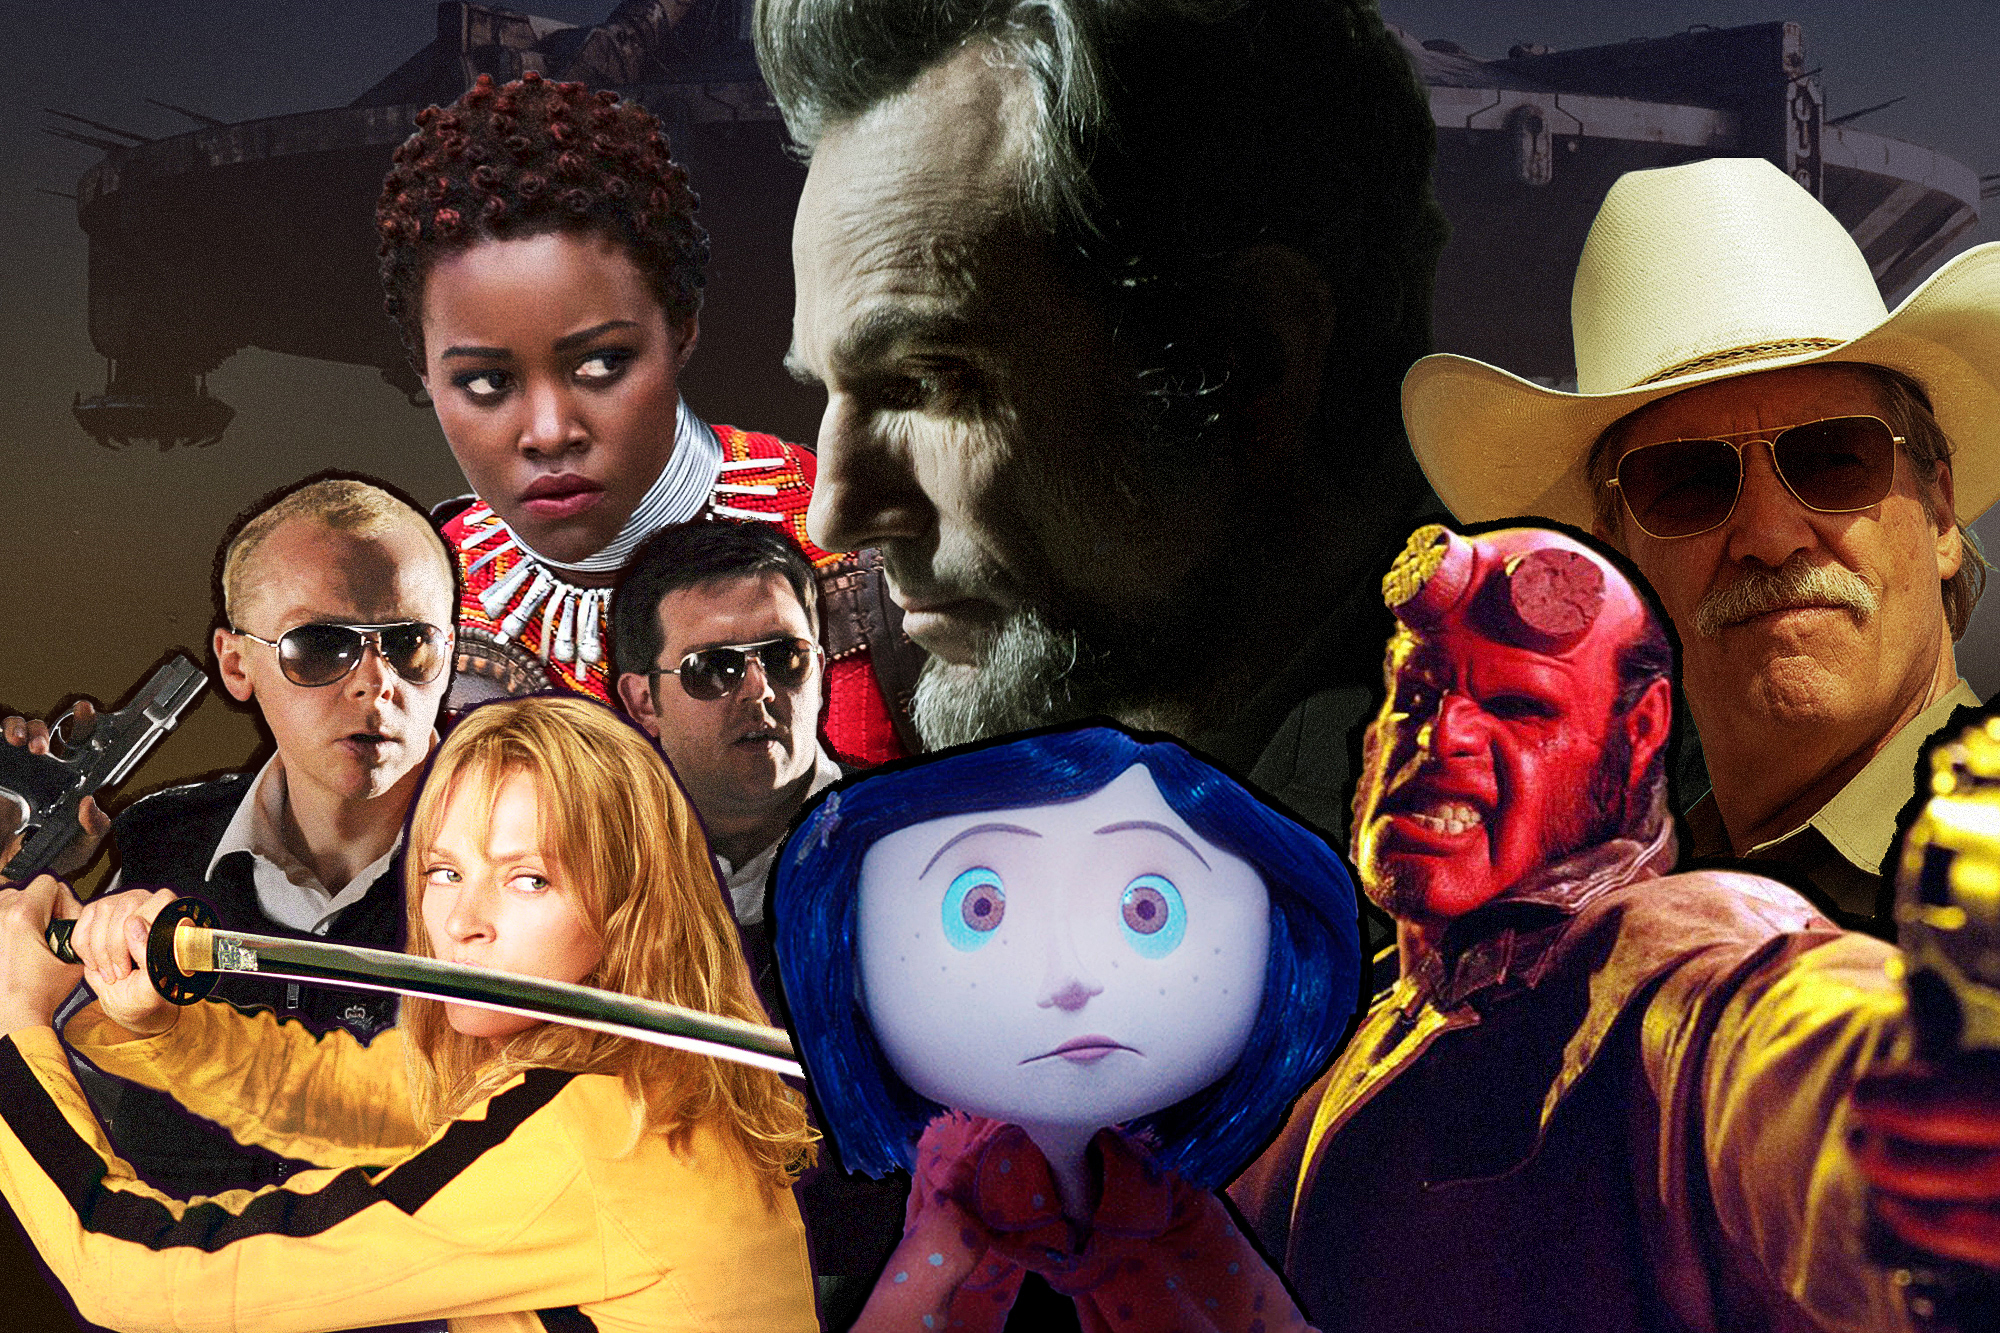 6c61fc993237 The best movies on Netflix to watch right now - Polygon